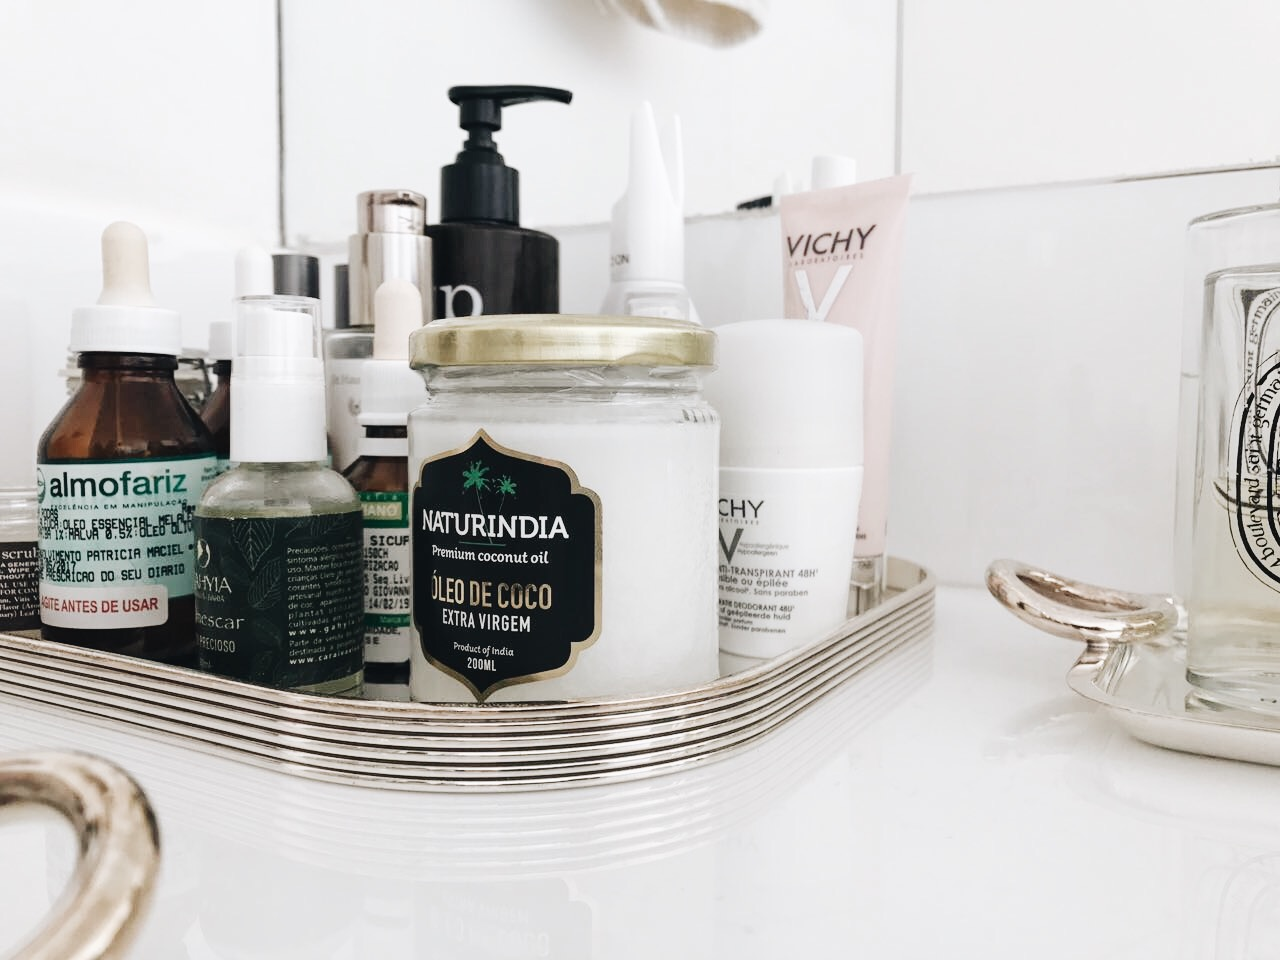 IMG 0751 - Top Shelf: A Beauty Routine da Helena Sicupira